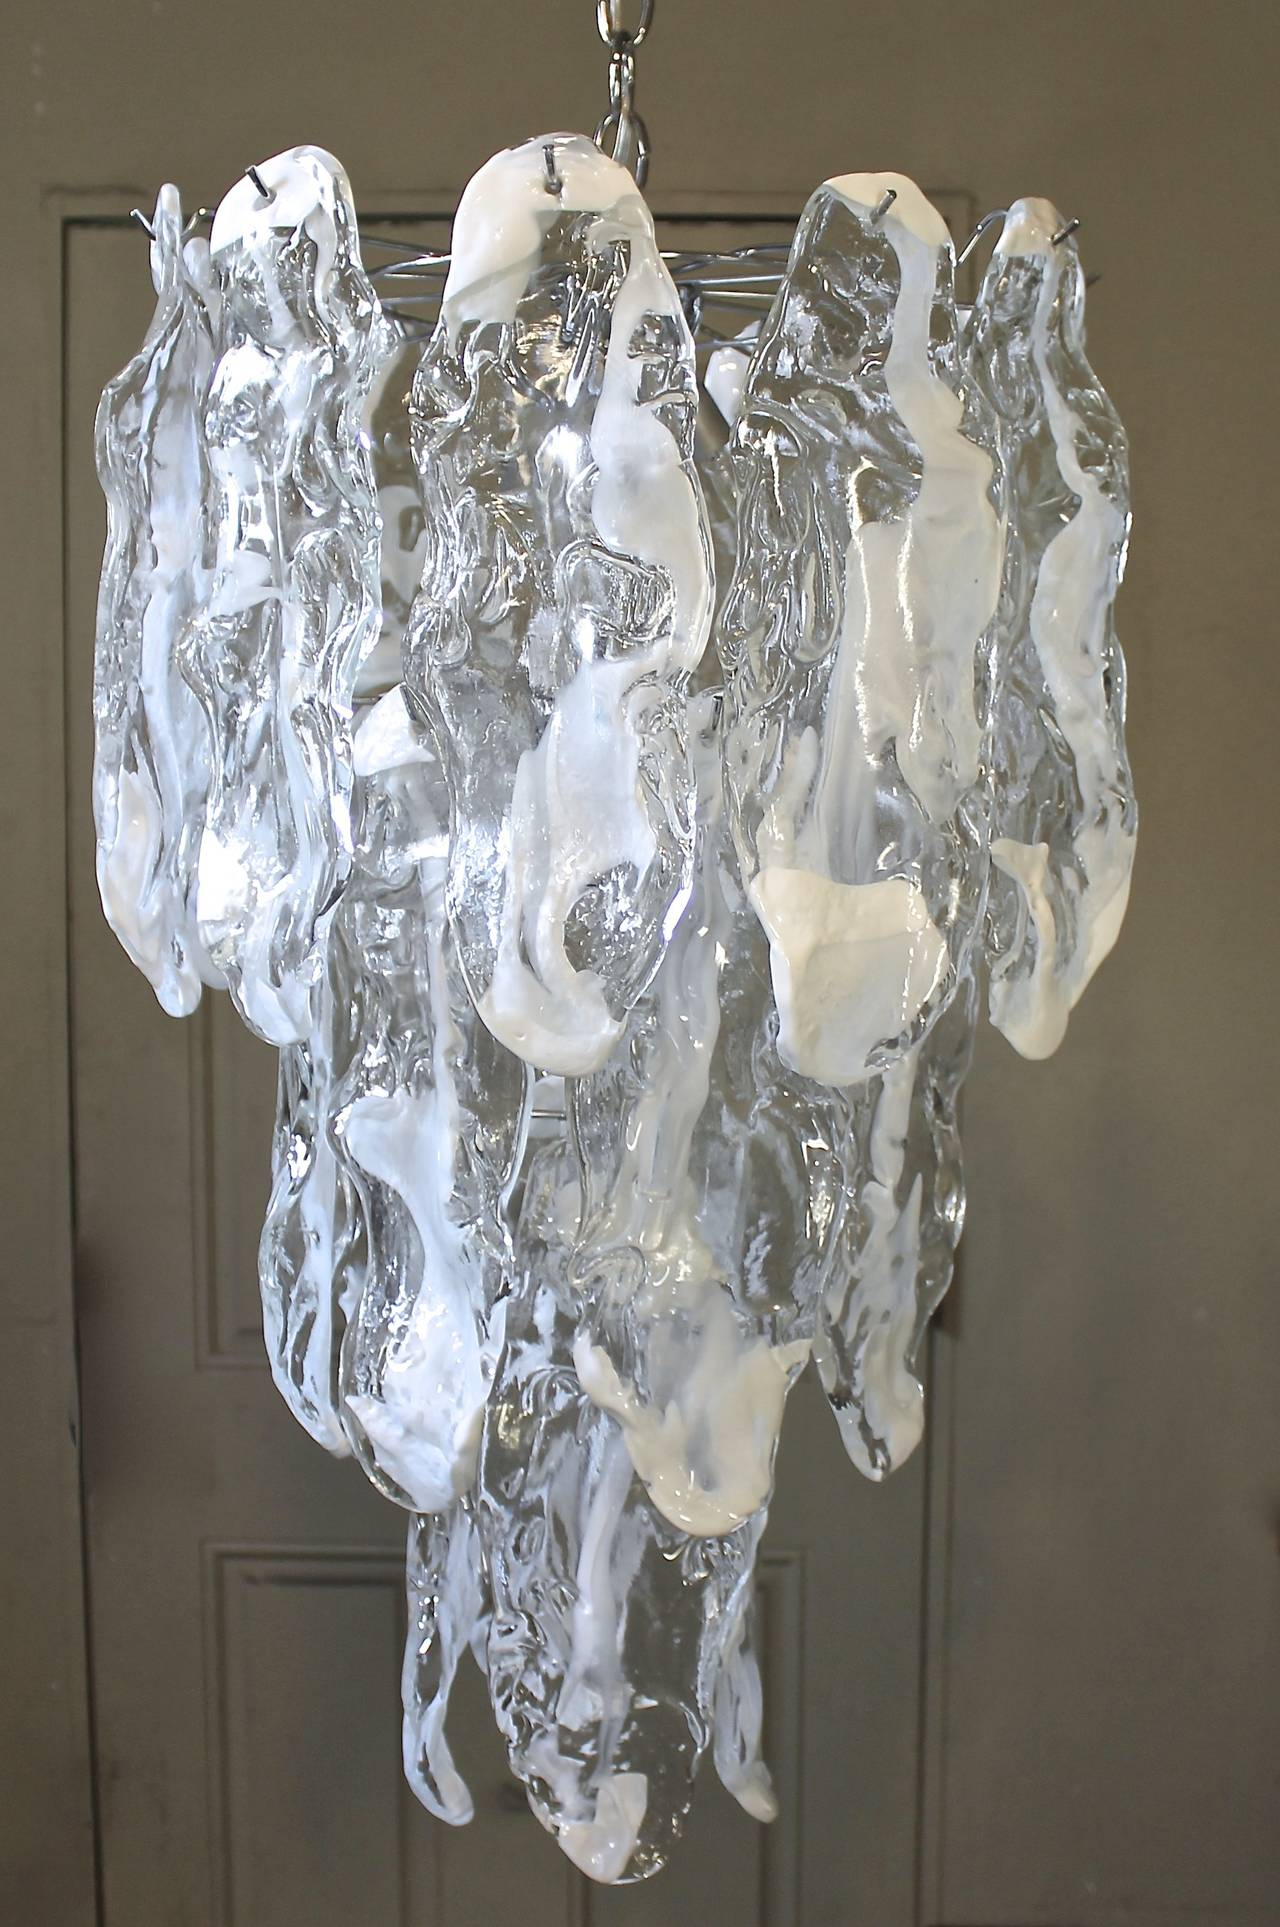 Murano Textured Glass Chandelier by Mazzega 5